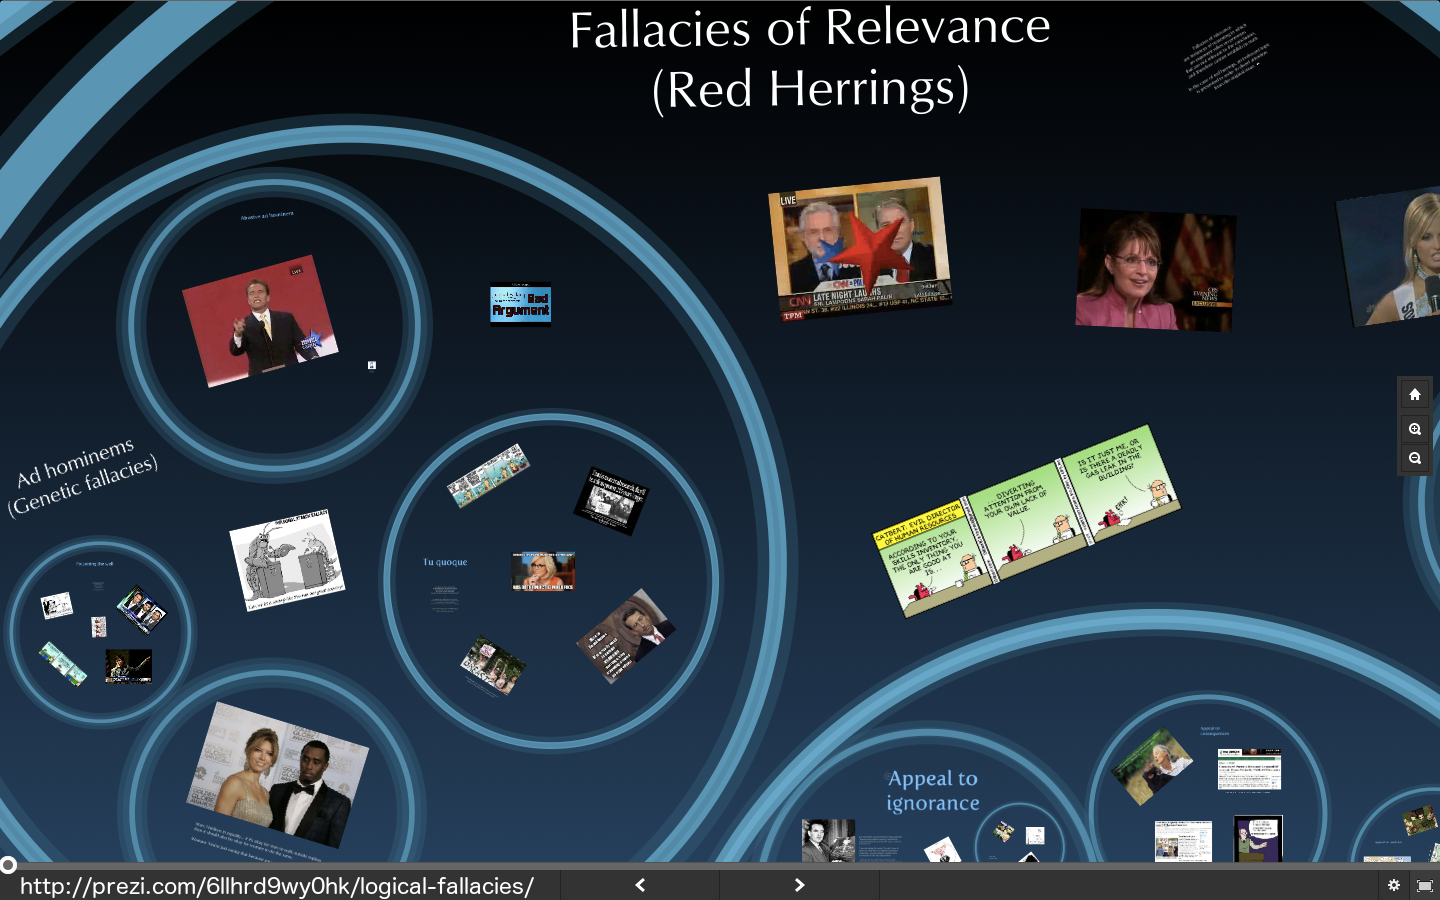 Logical Fallacies 06 Red Herring or Irrelevant Thesis Fallacy episode 327